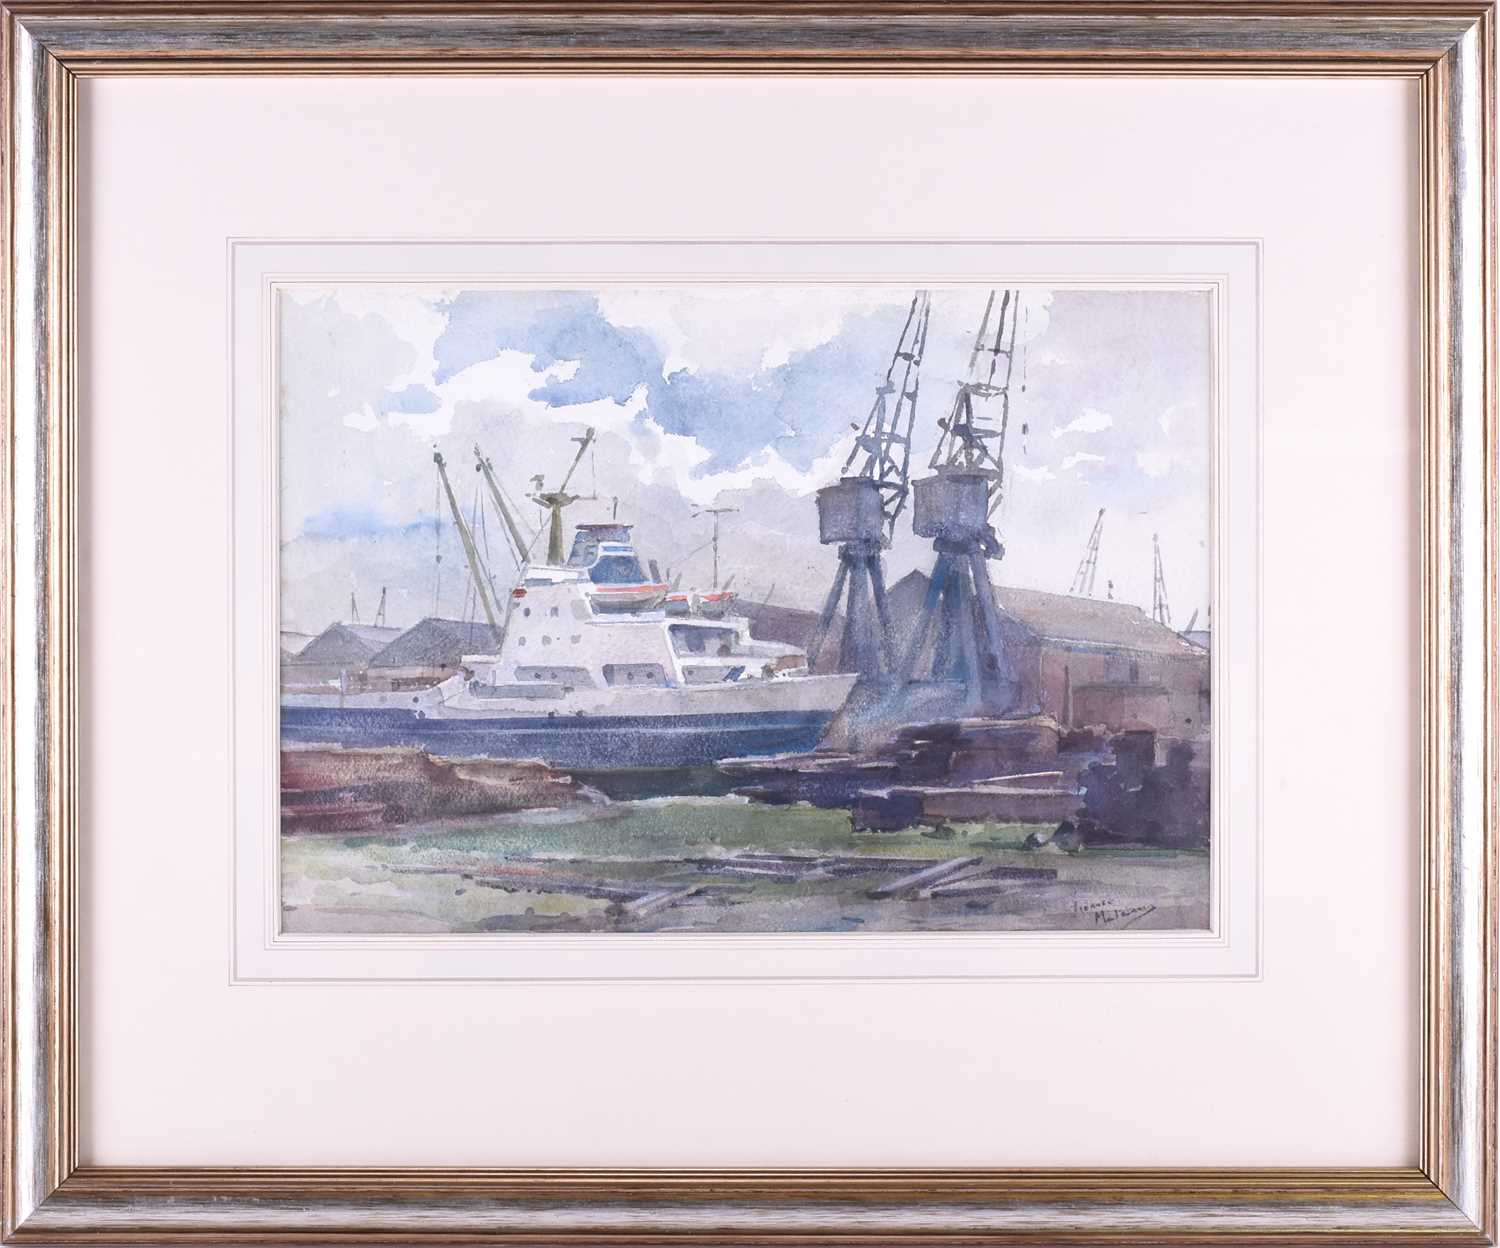 Lot 23 - Franco Matania (1922-2006) Italian/British, a group of three boat-related pictures including a